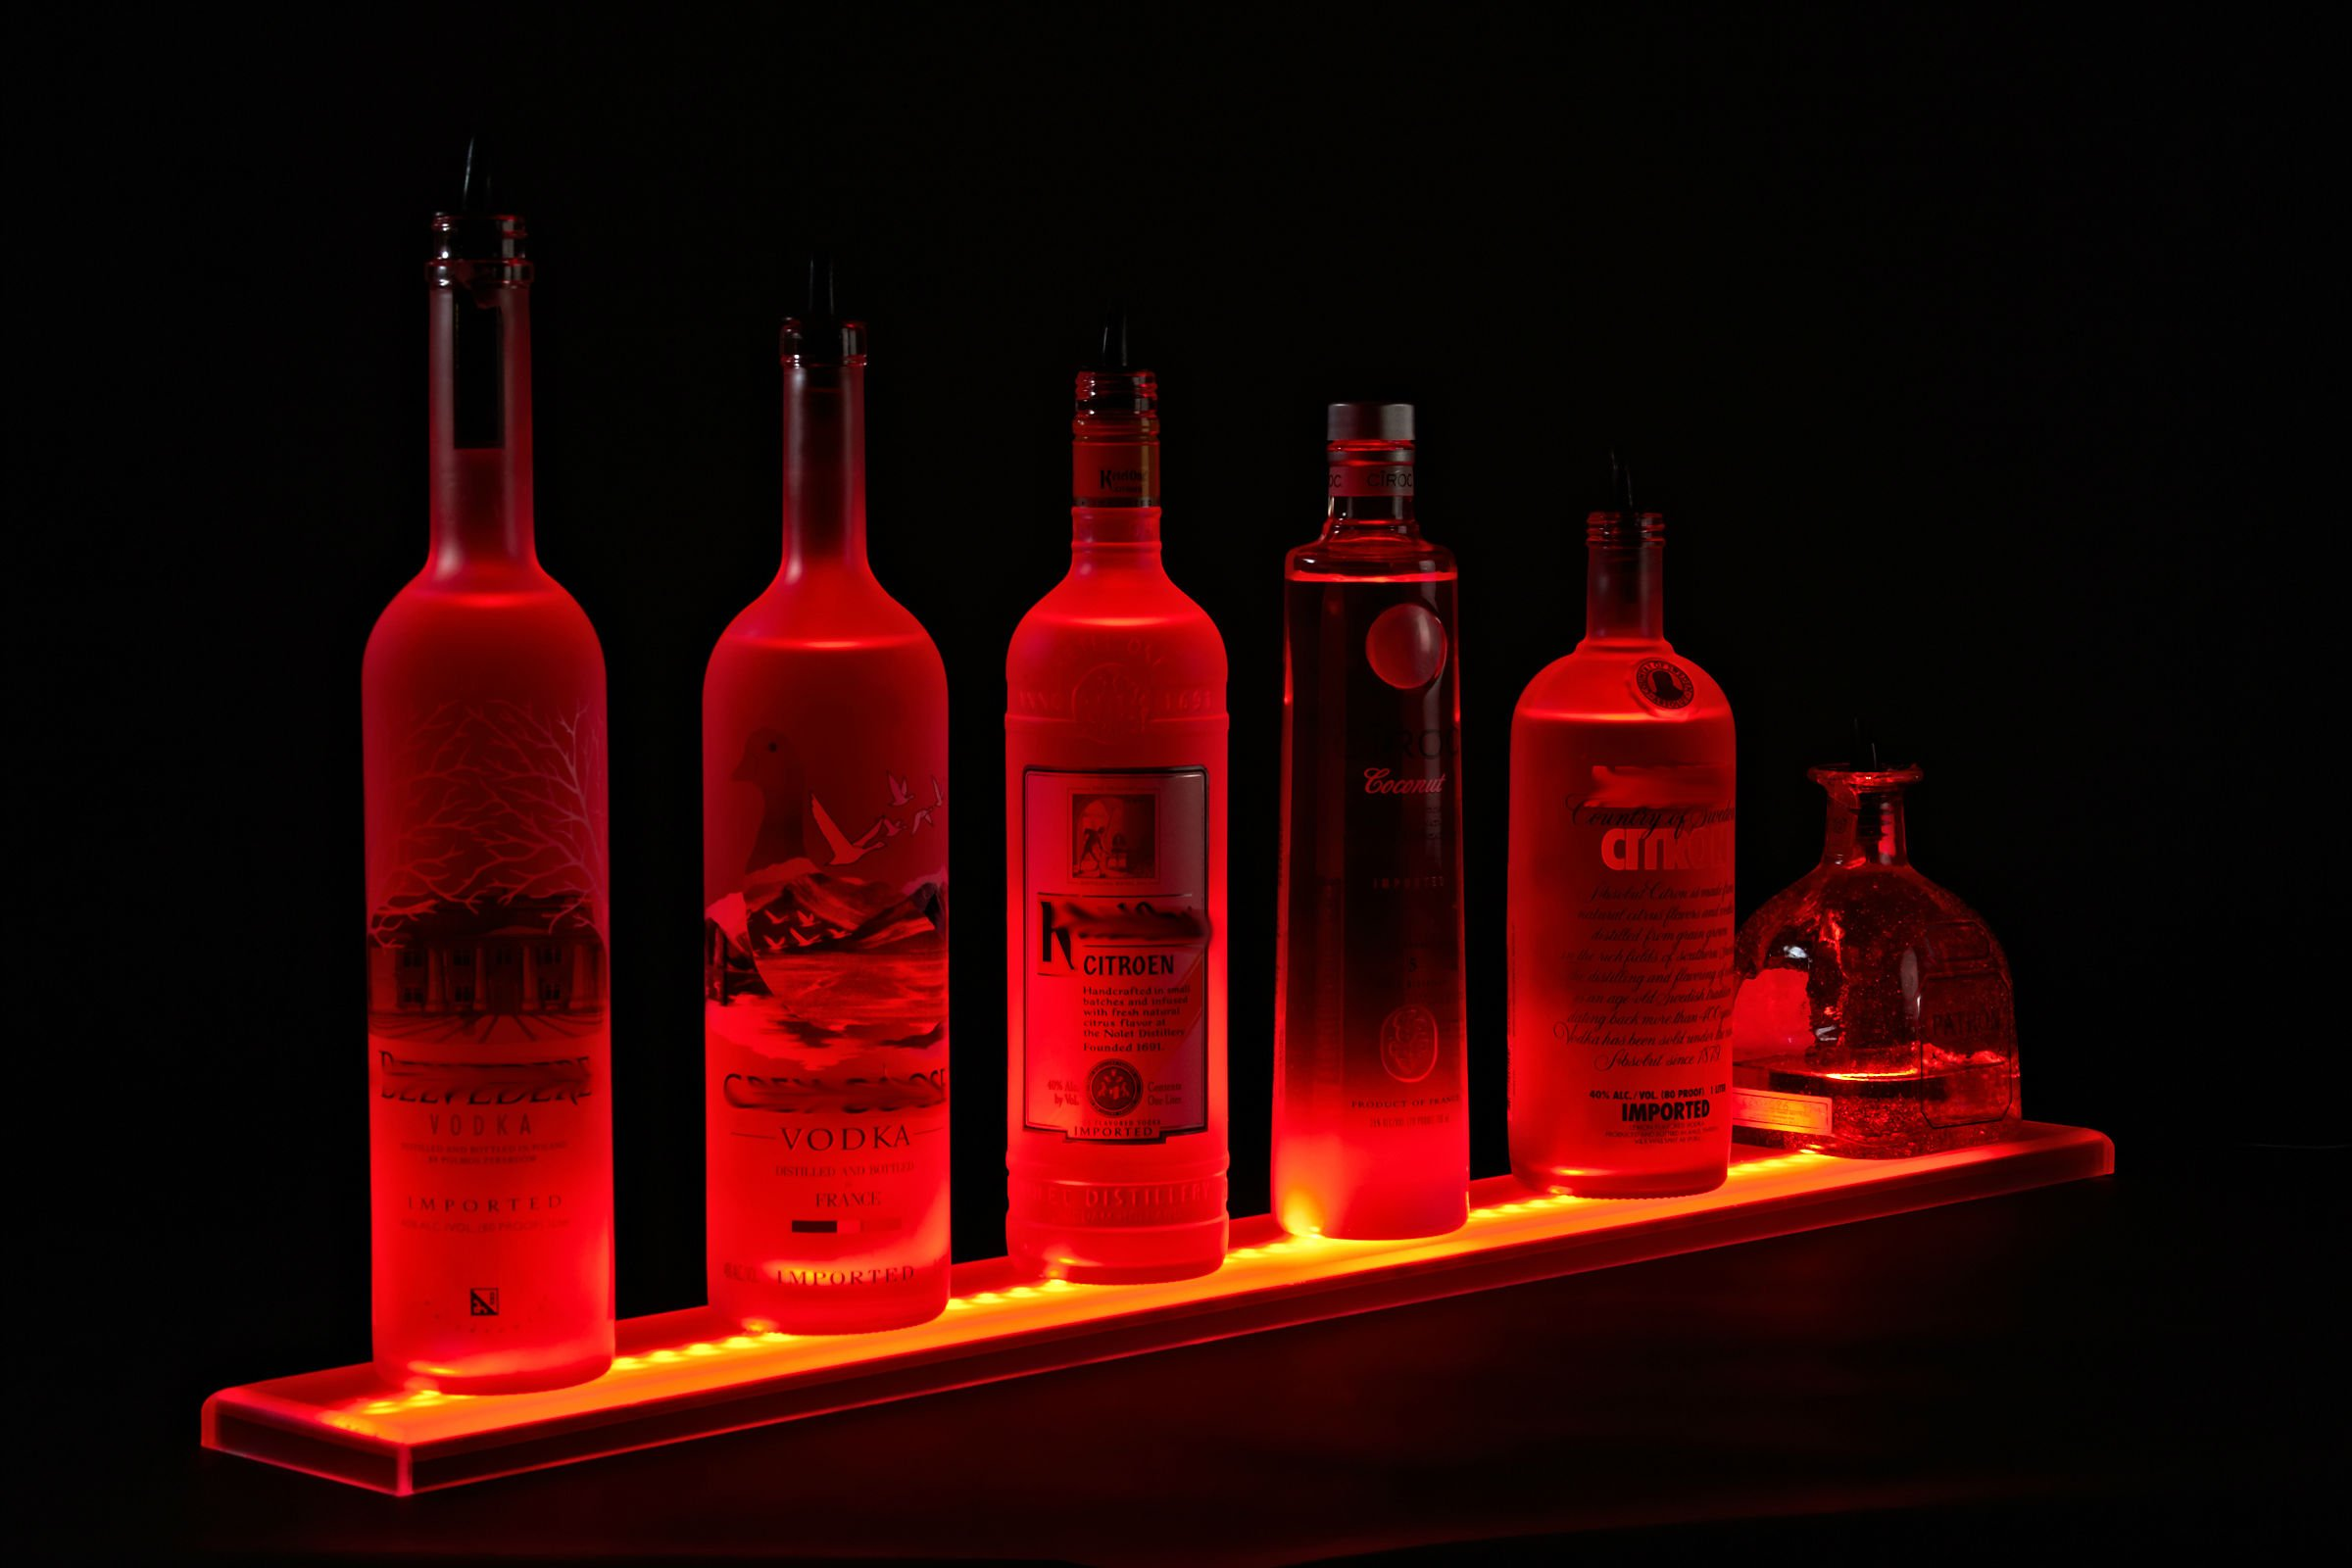 5' 6'' LED Liquor Bottle Shelf - includes brackets, wireless remote control, and UL Listed Power Supply